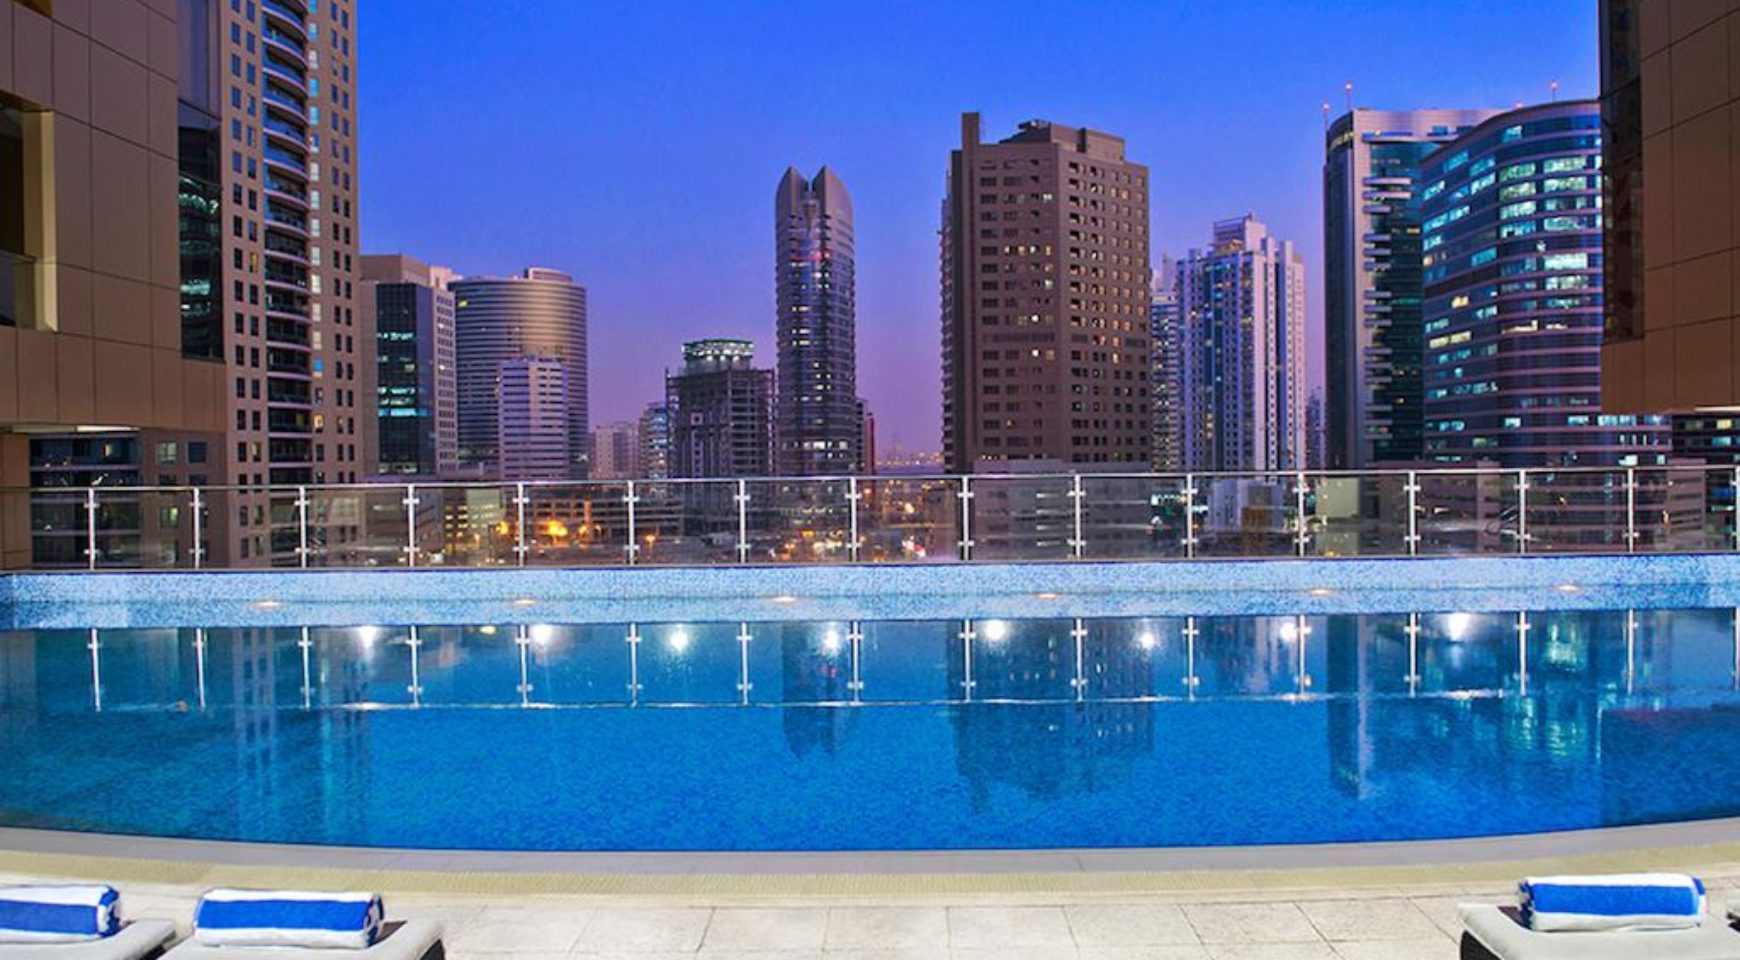 Mercure dubai barsha heights hotel suites dubai hotels guide for Dubai hotels list